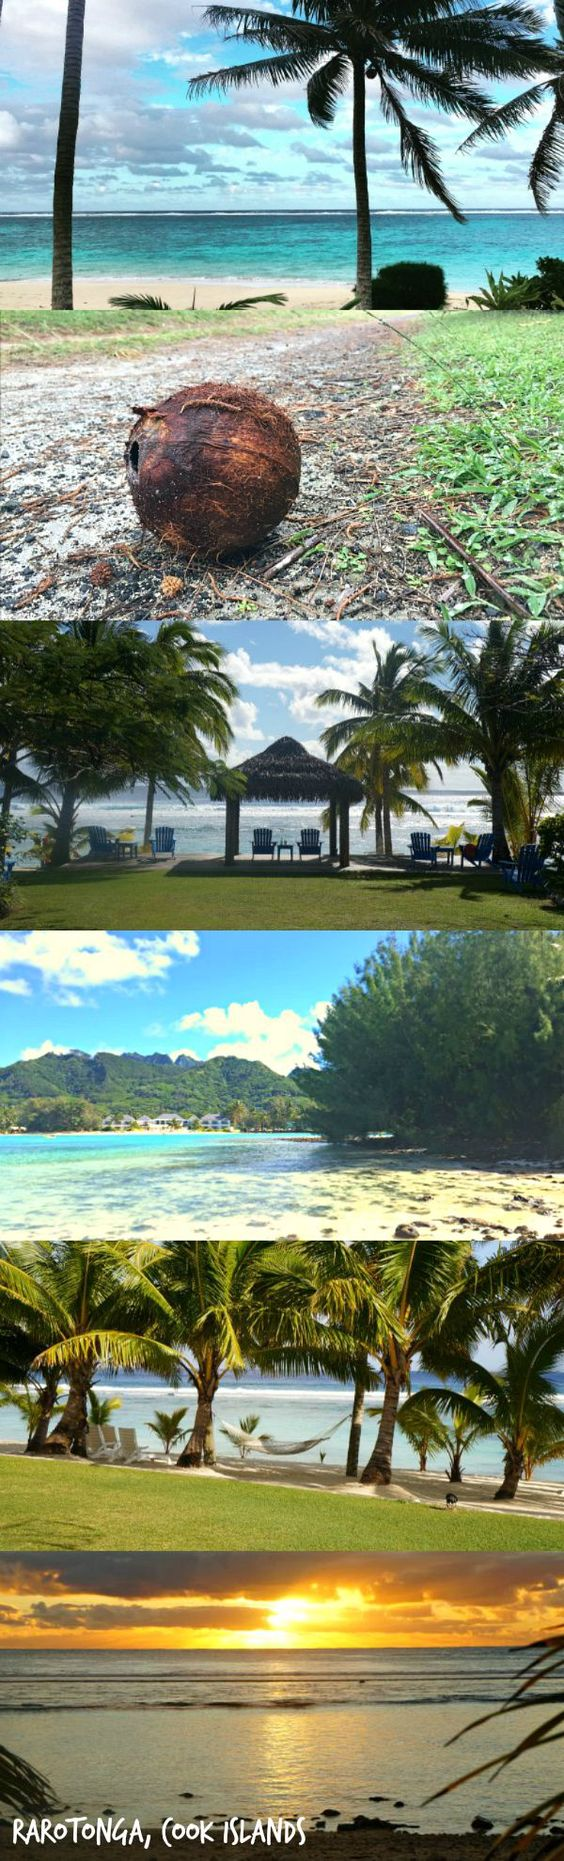 A relaxing vacation in paradise, the gorgeous island of Rarotonga, Cook Islands